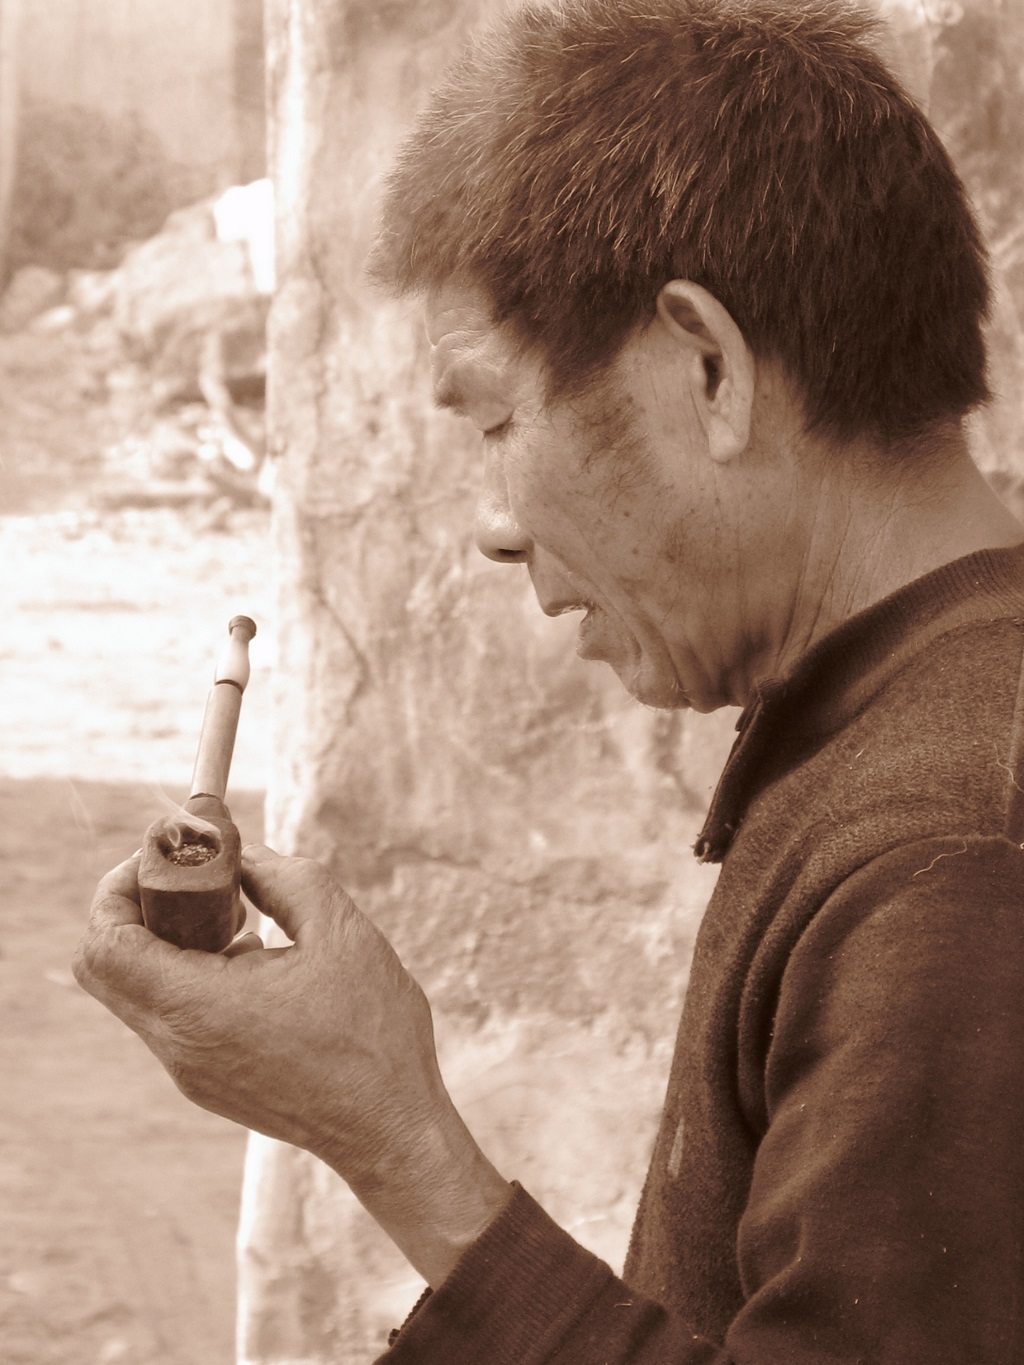 A male villager smoking with a pipe